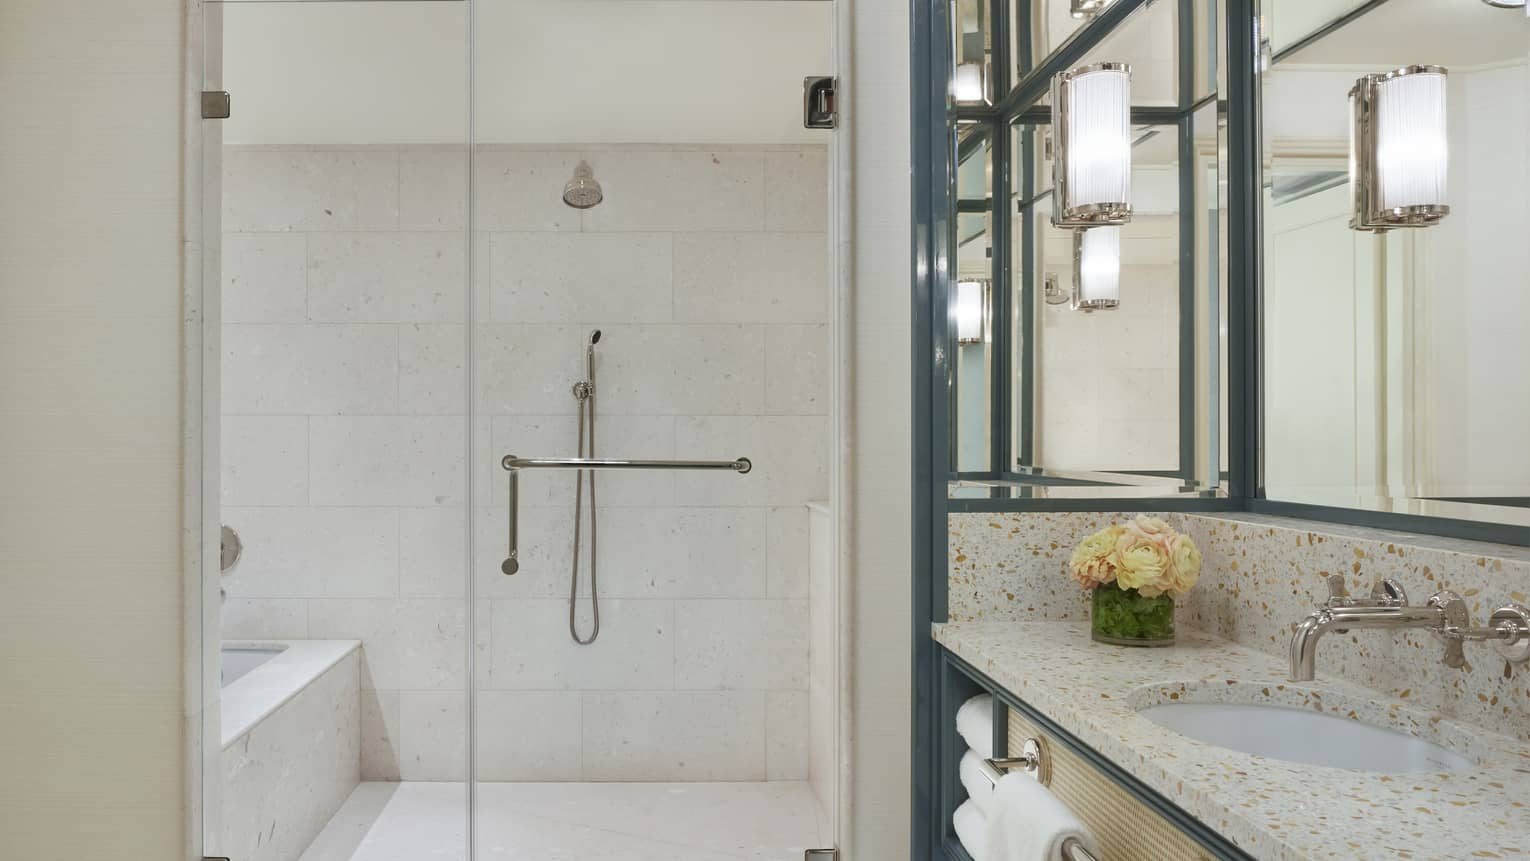 Modern hotel bathroom with a walk-in shower and large vanity